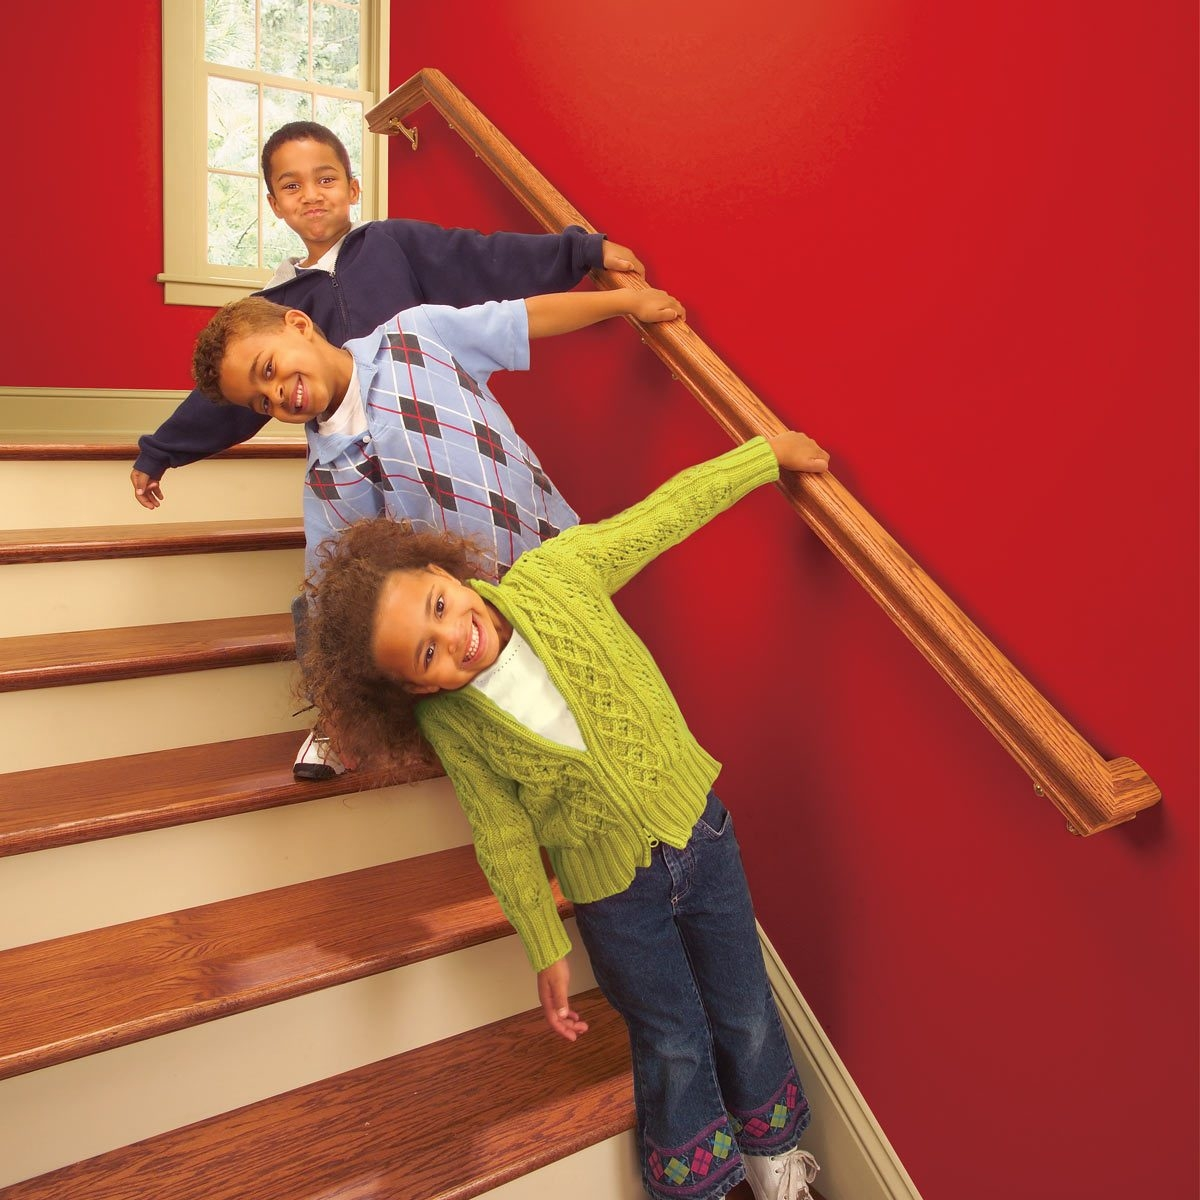 Install A New Stair Handrail | Attaching Handrail To Wall | Stair Parts | Brick | Wood | Staircase | Scr*W